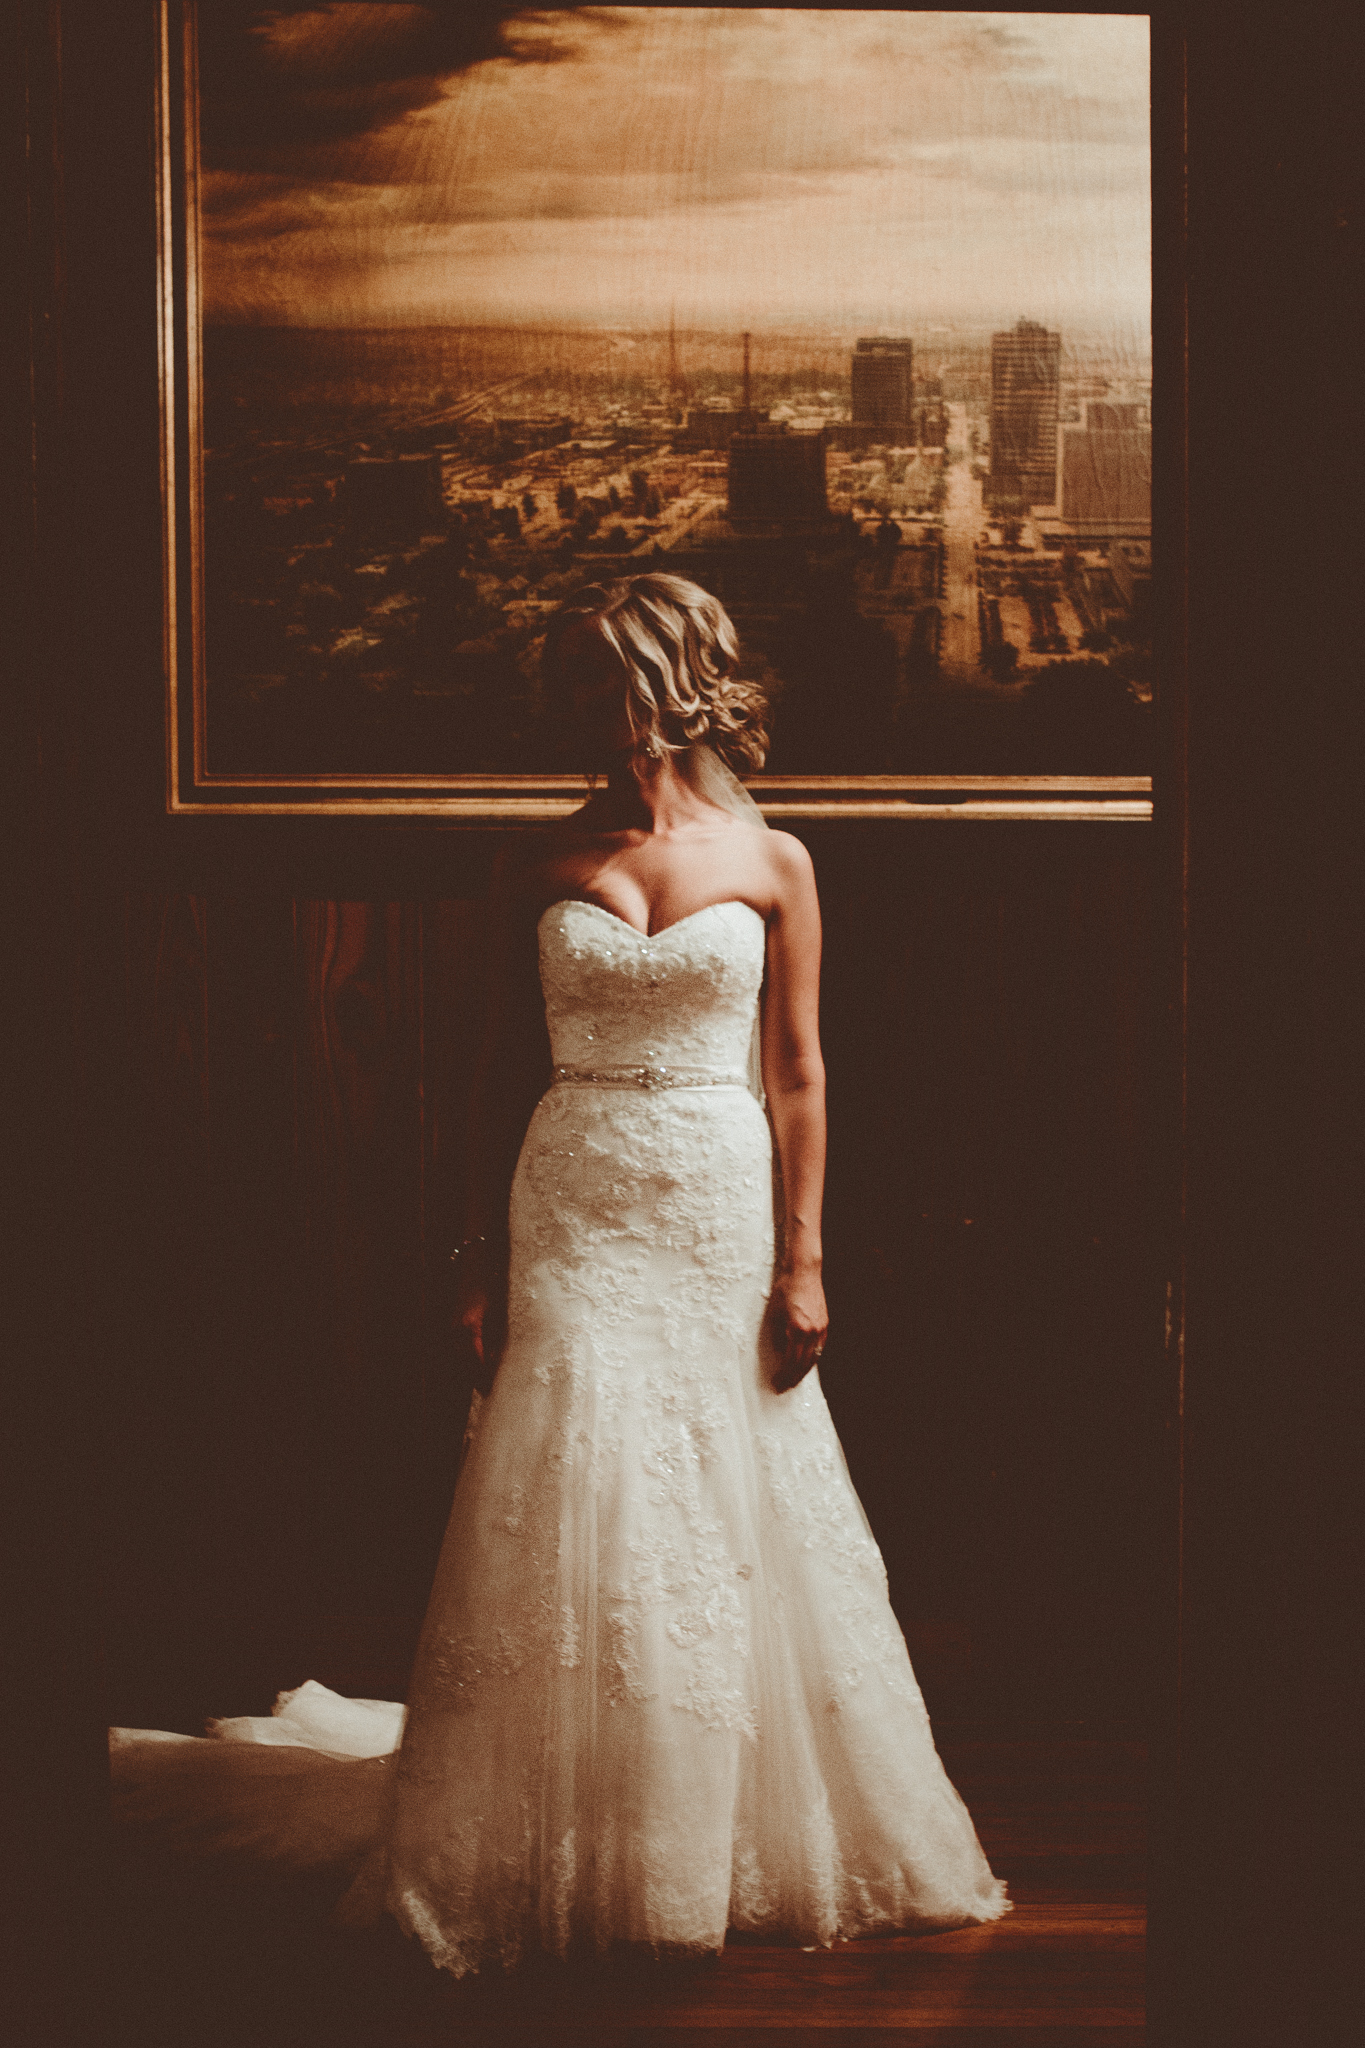 Non traditional moody and raw bridal portrait. Josh + Alora | Classic Denham Springs Wedding. Photos by Christi Childs with The Picture People LA photography Baton Rouge, Louisiana